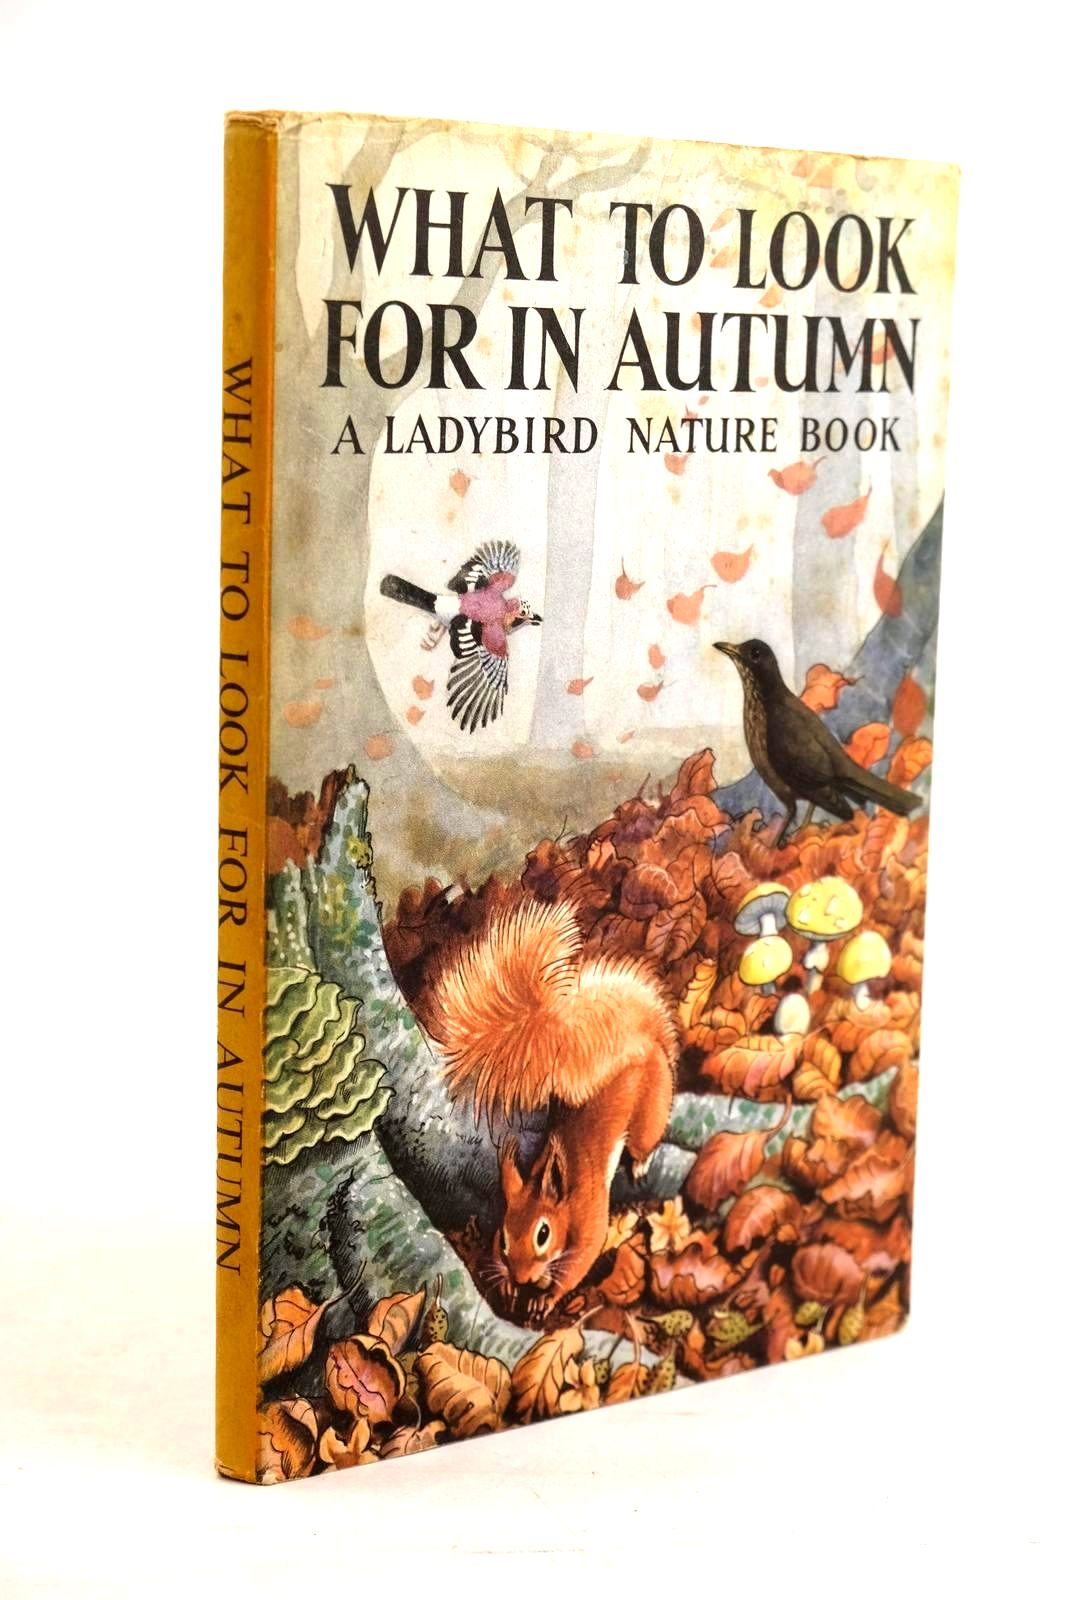 Photo of WHAT TO LOOK FOR IN AUTUMN written by Watson, E.L. Grant illustrated by Tunnicliffe, C.F. published by Wills & Hepworth Ltd. (STOCK CODE: 1320637)  for sale by Stella & Rose's Books